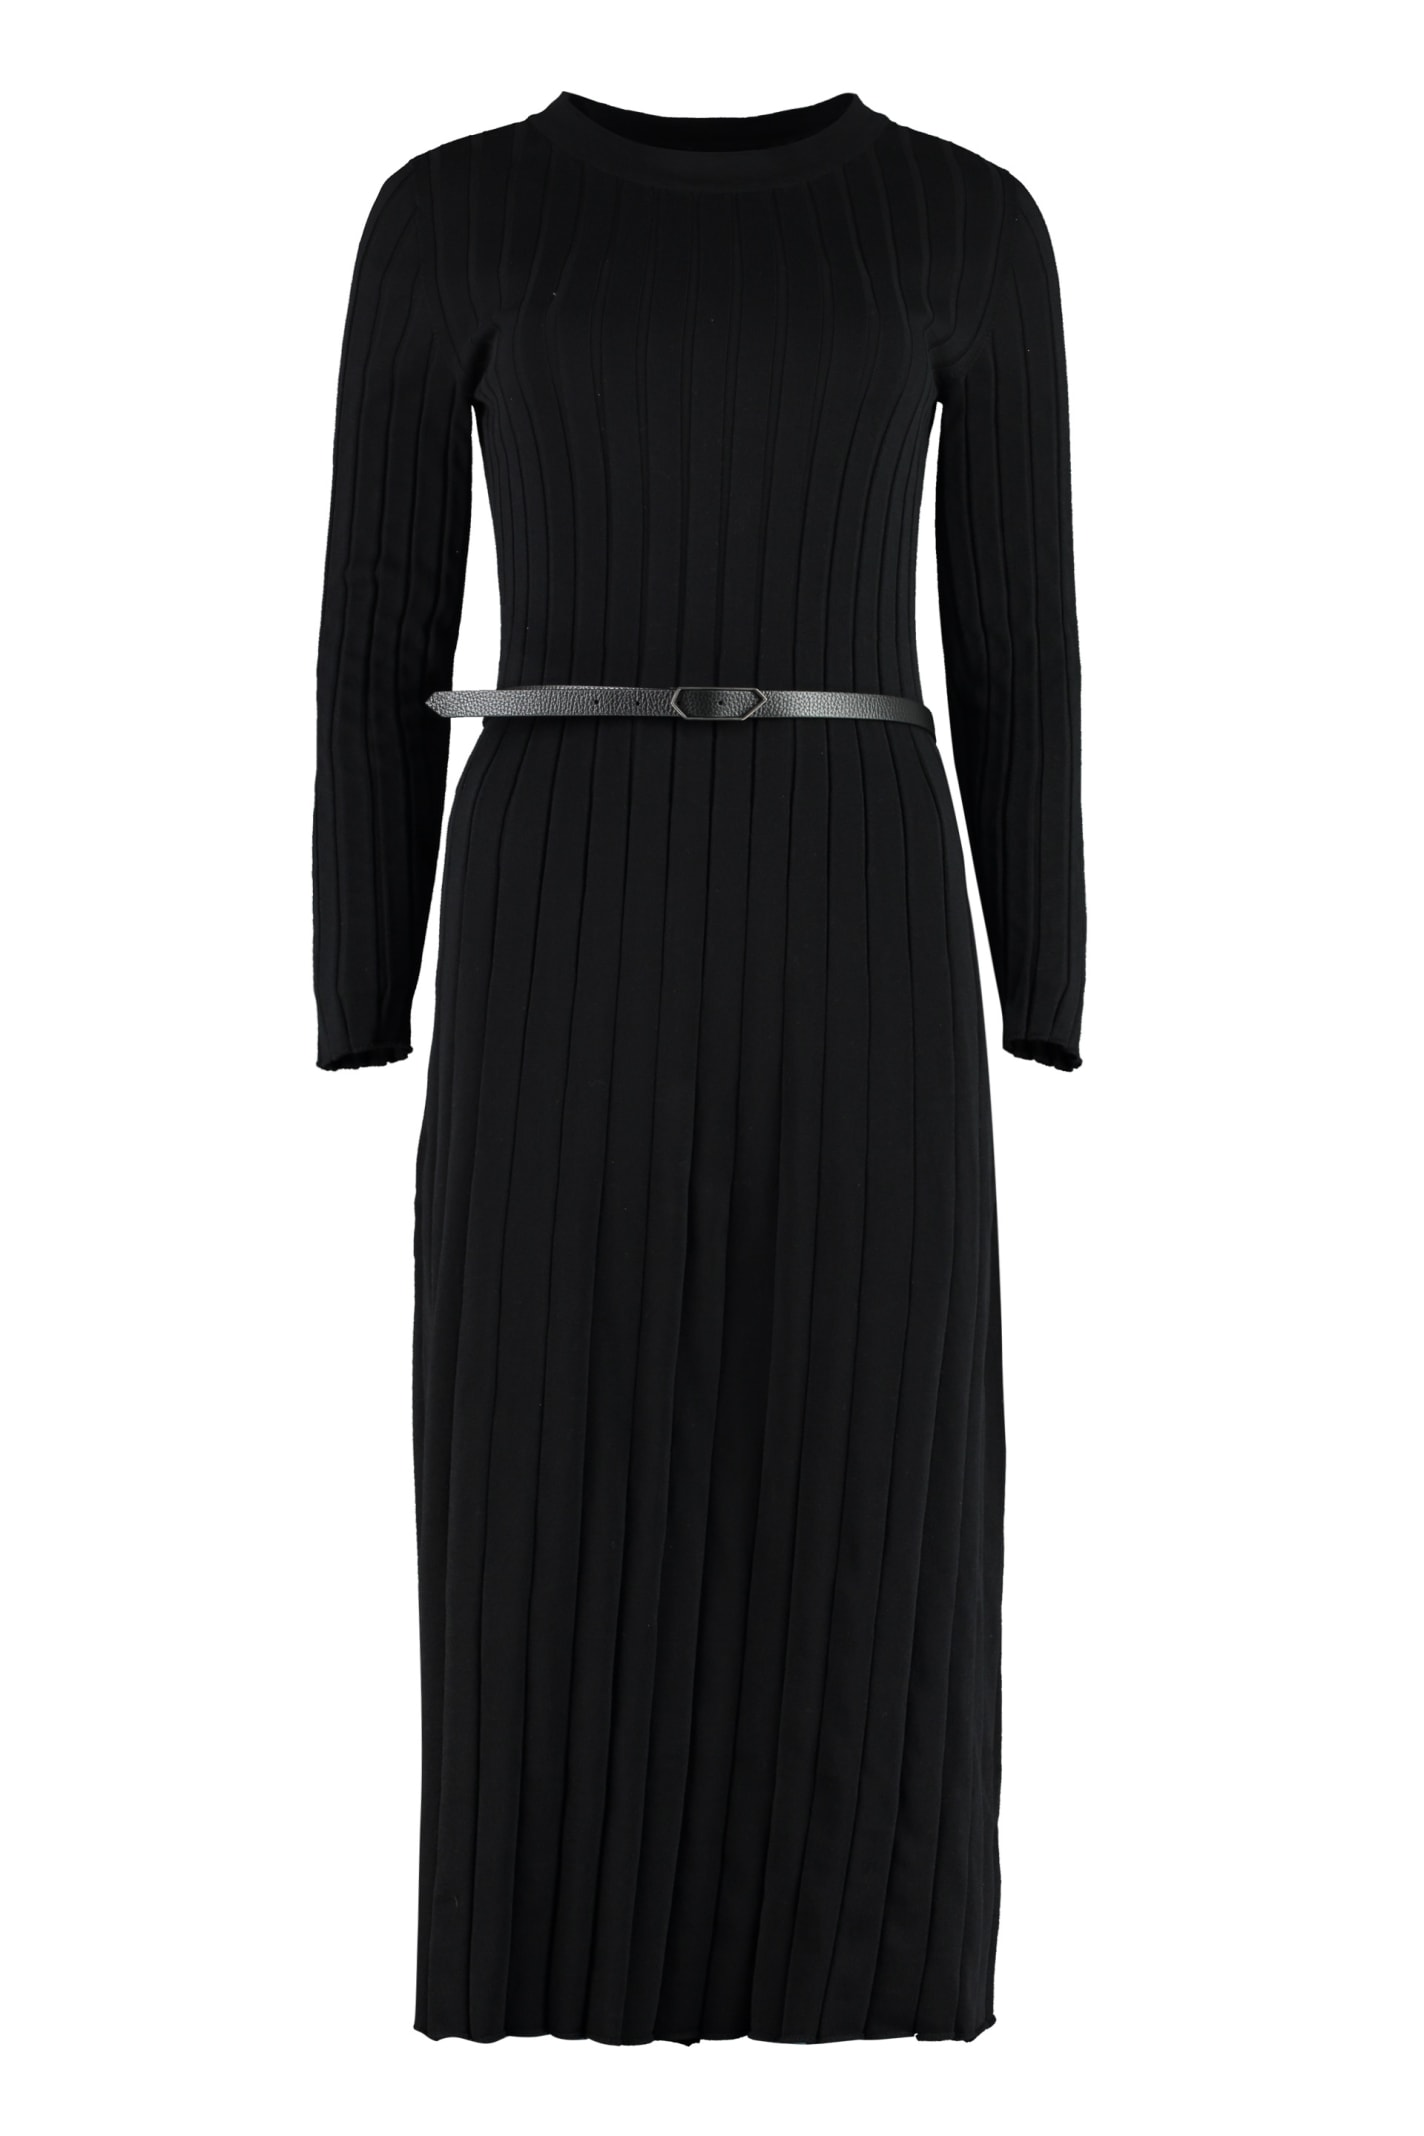 Fabiana Filippi RIBBED KNIT DRESS